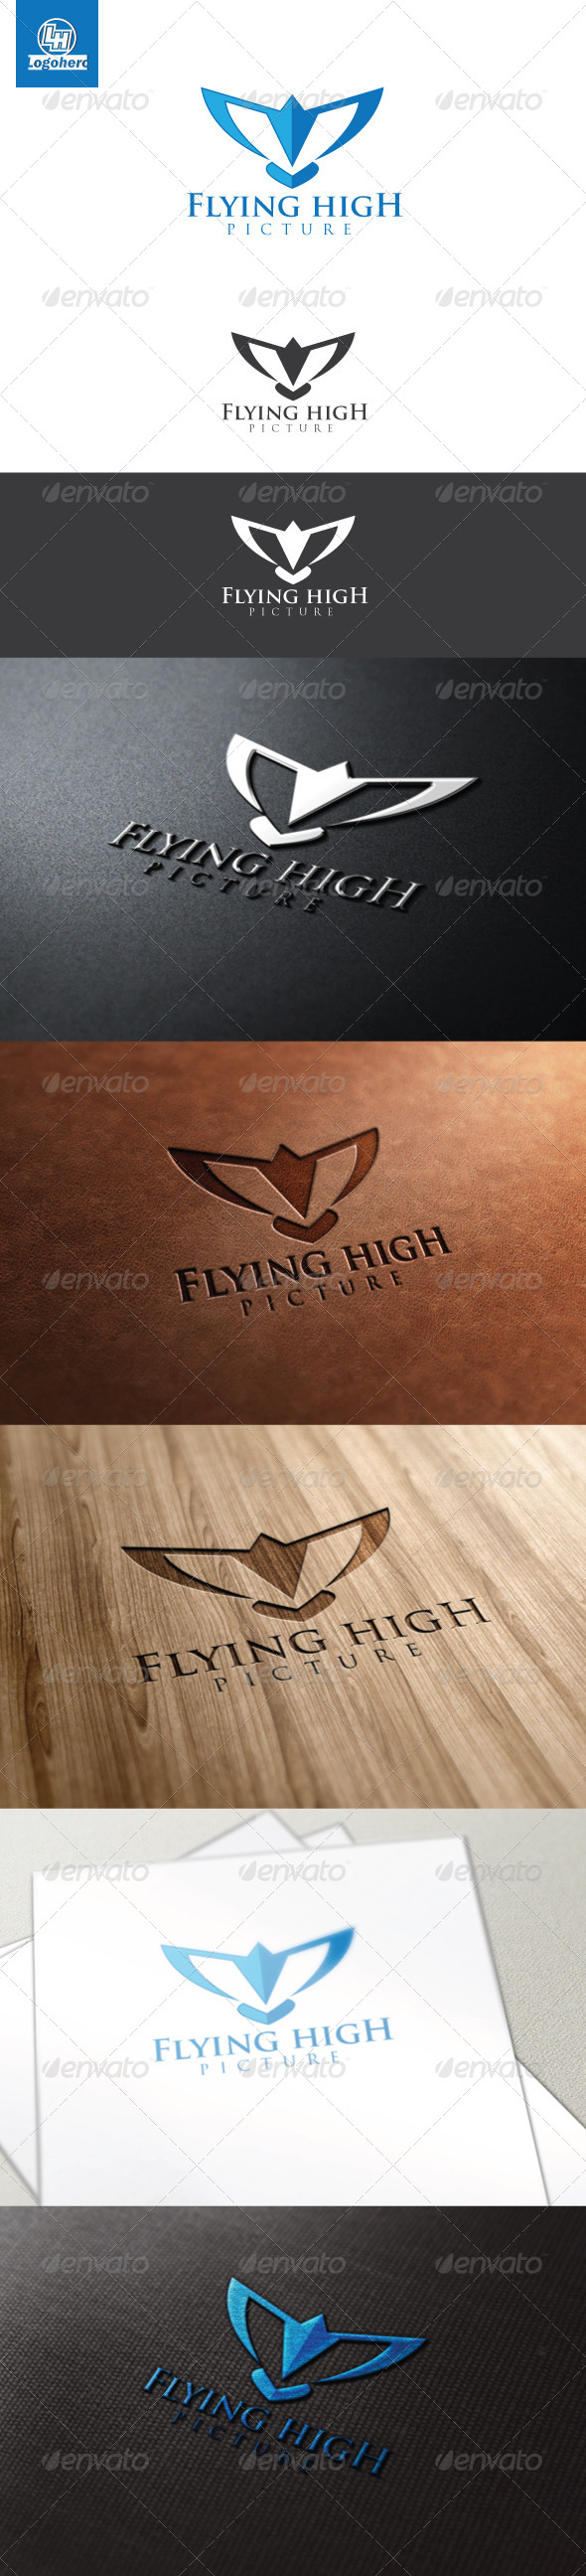 Flying High Logo Template - Symbols Logo Templates